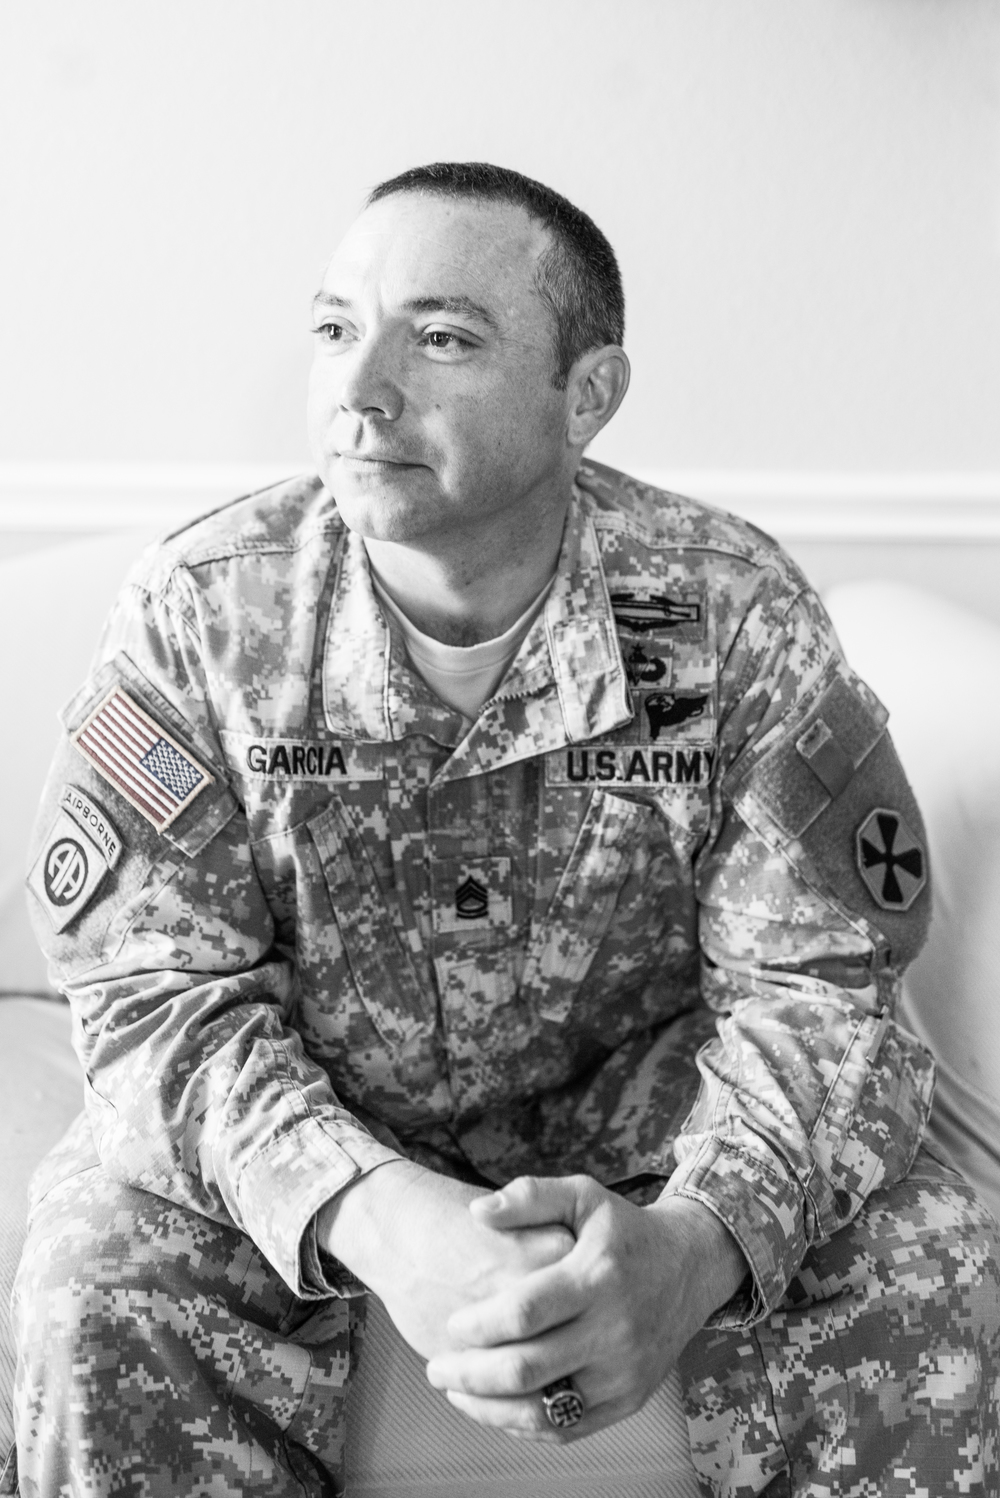 sfc jeremy garcia army operation i dom operation what keeps you cool in your civilian life what are some of the things you enjoy that are now therapeutic